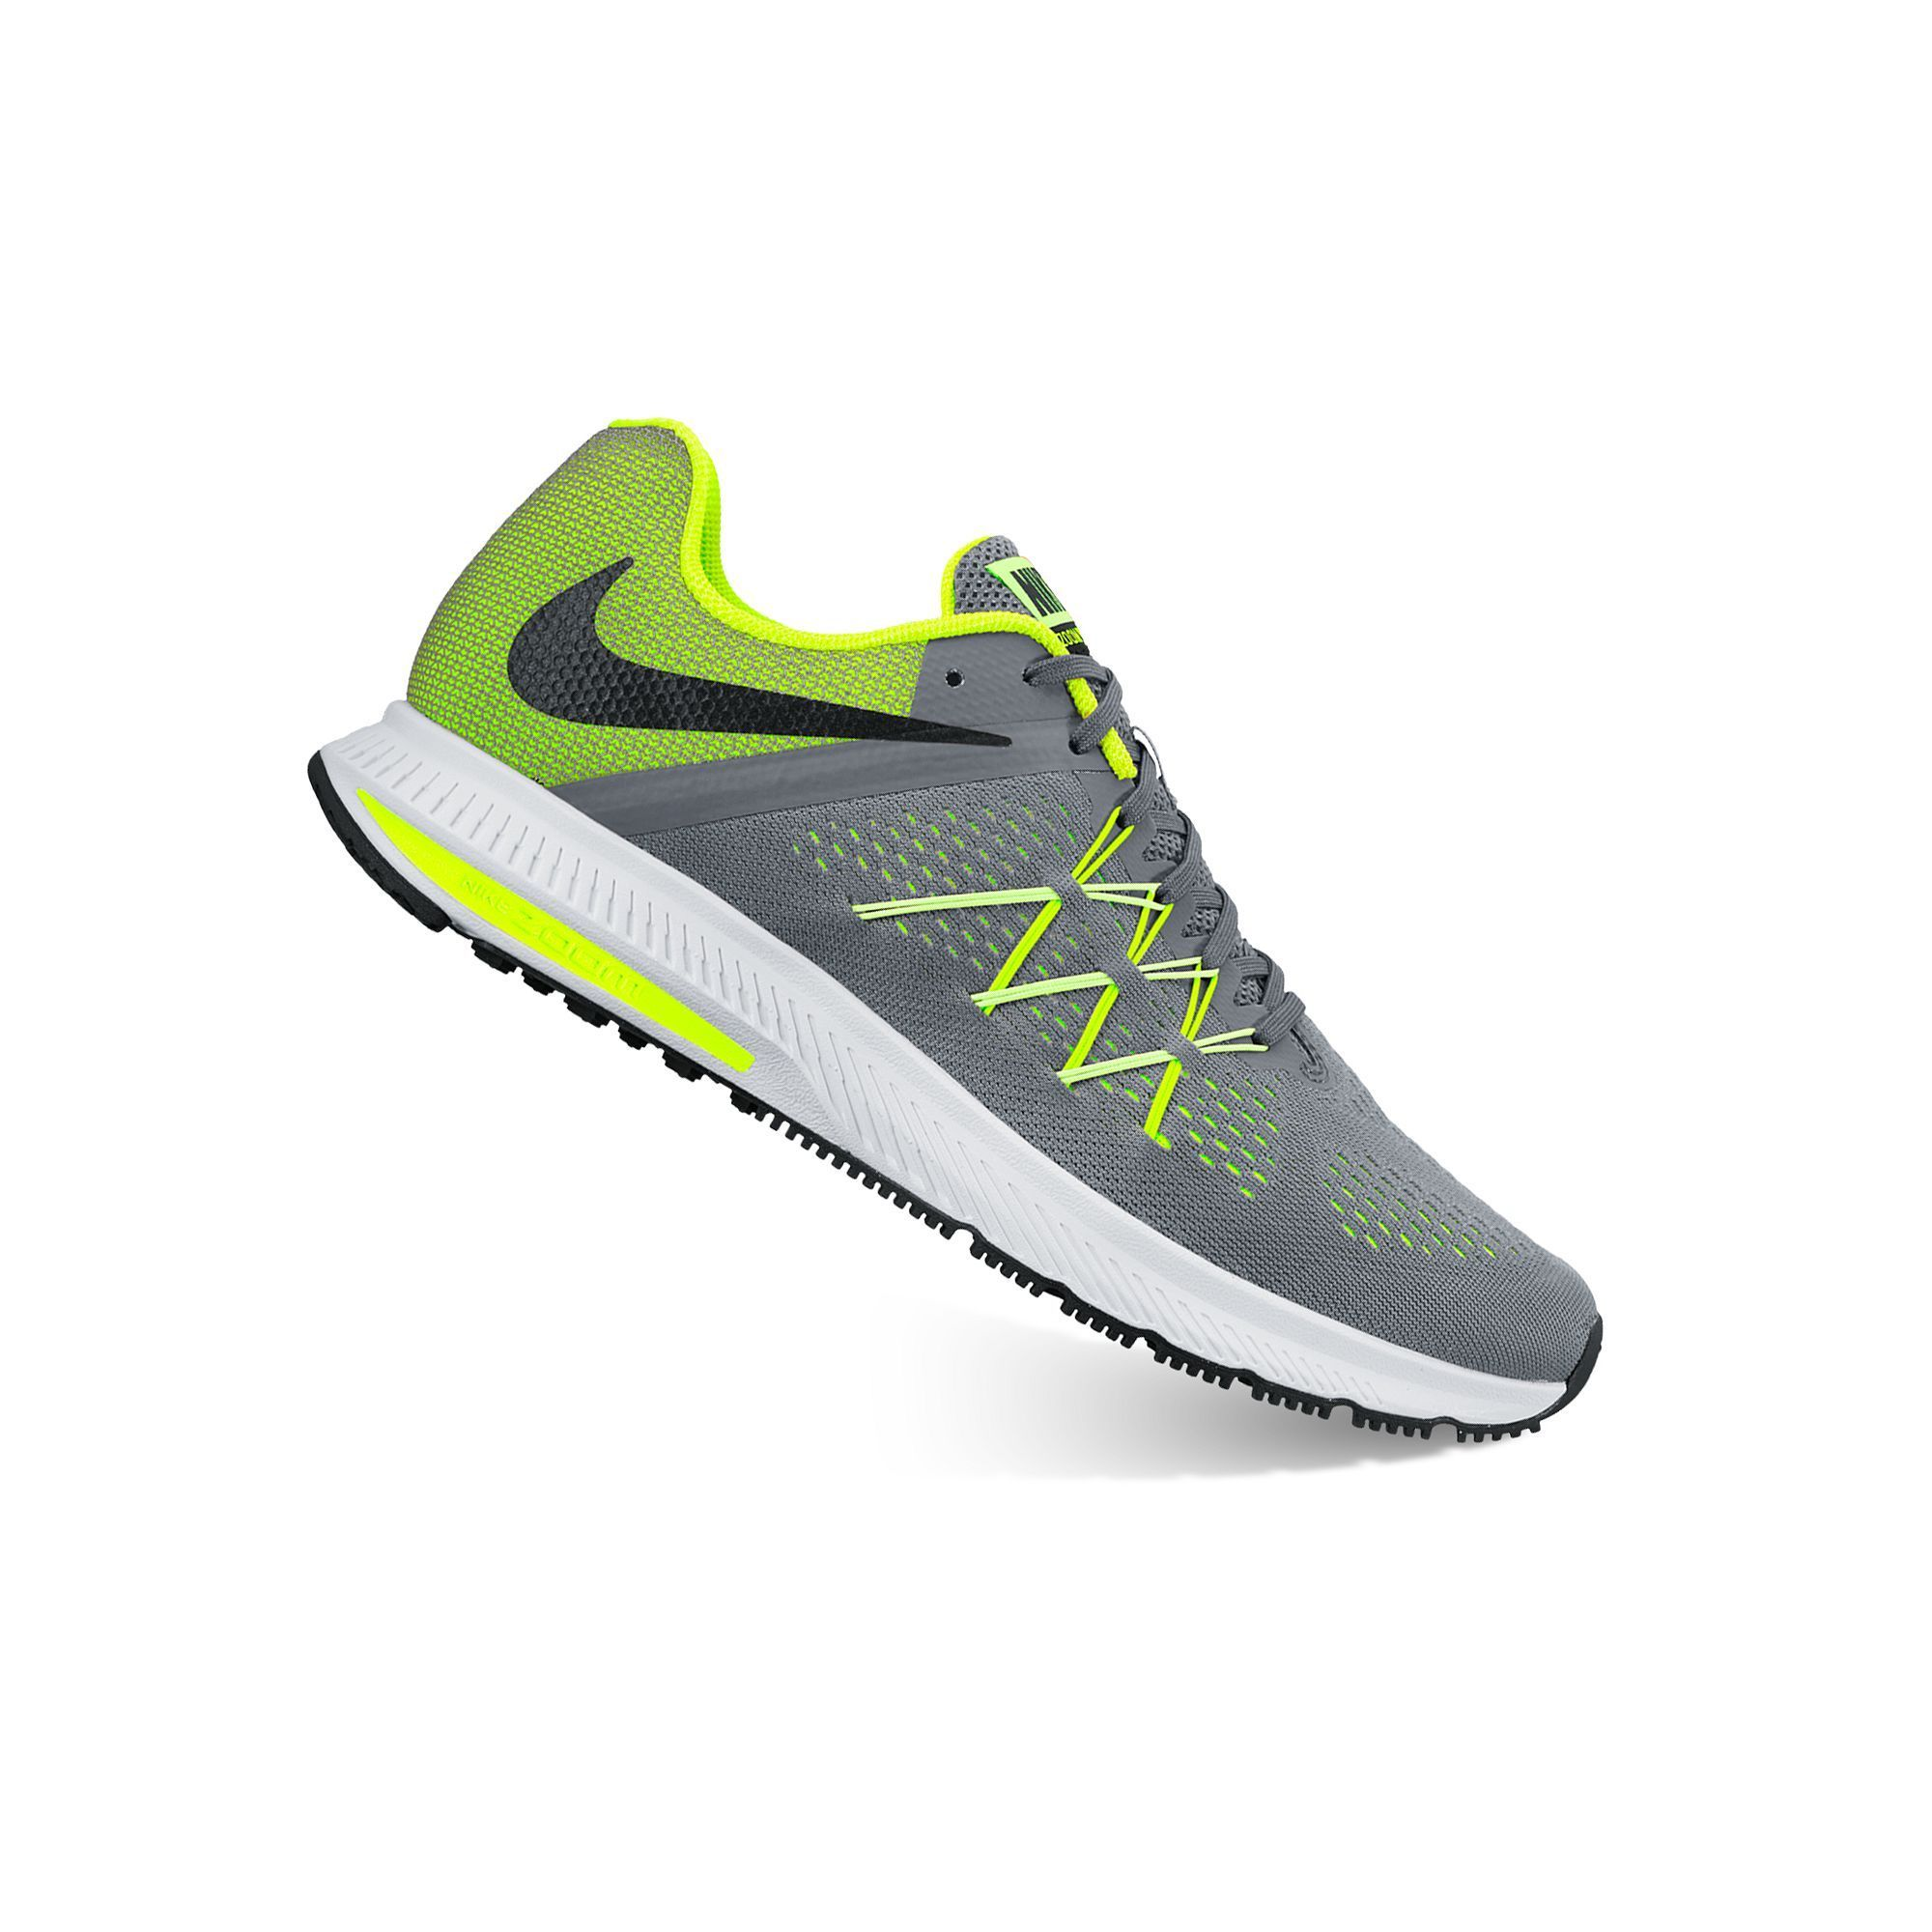 new concept cdf00 84f00 Nike Air Zoom Winflo 3 Men's Running Shoes | Products ...